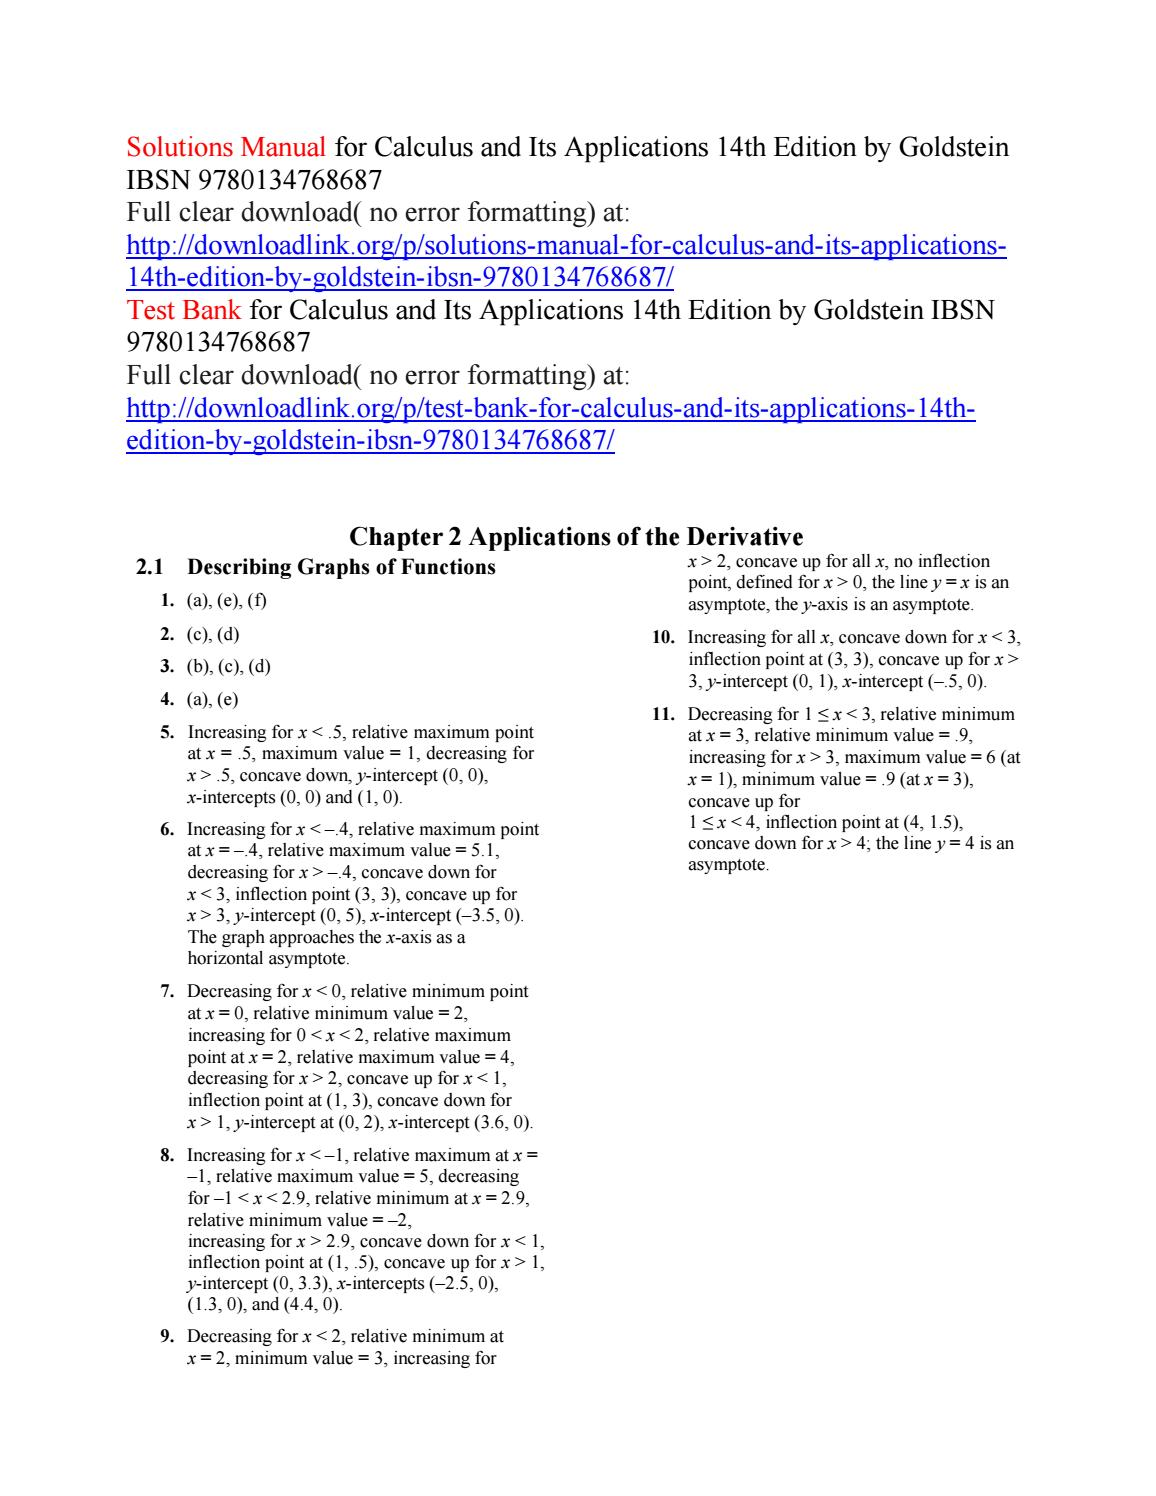 calculus and its applications answers